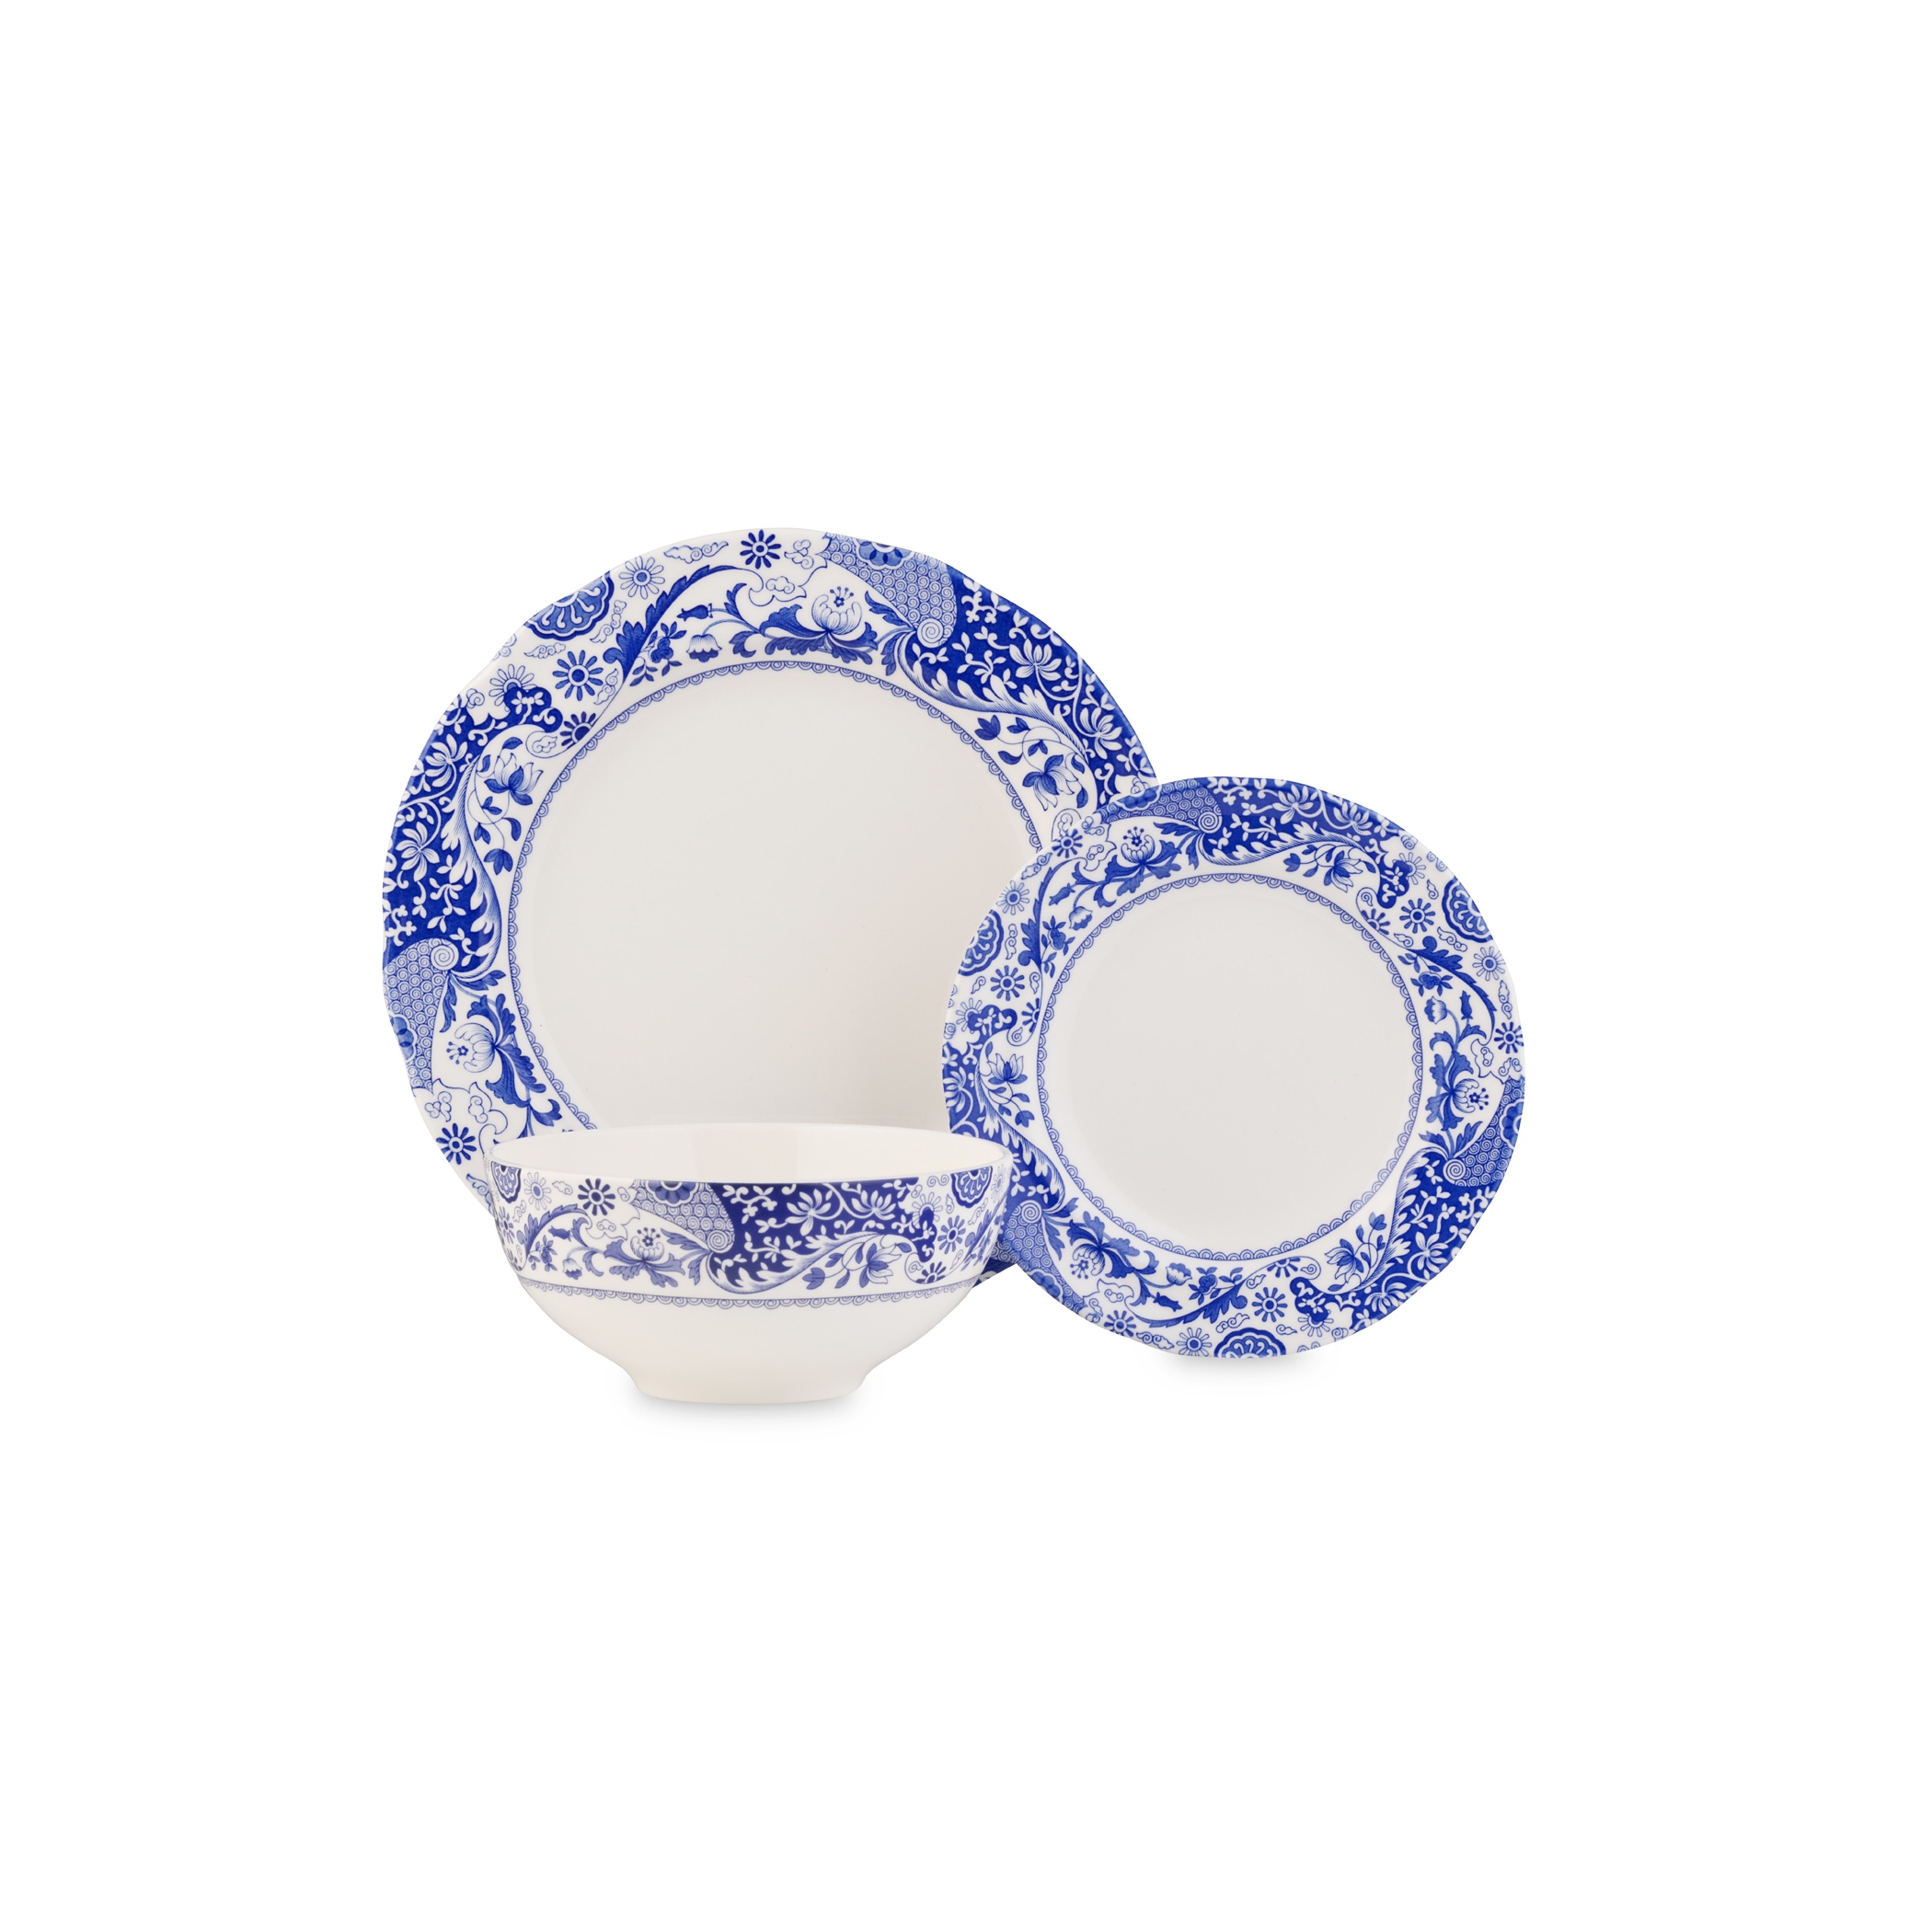 Spode Blue Italian Brocato 12 Piece Set image number 1